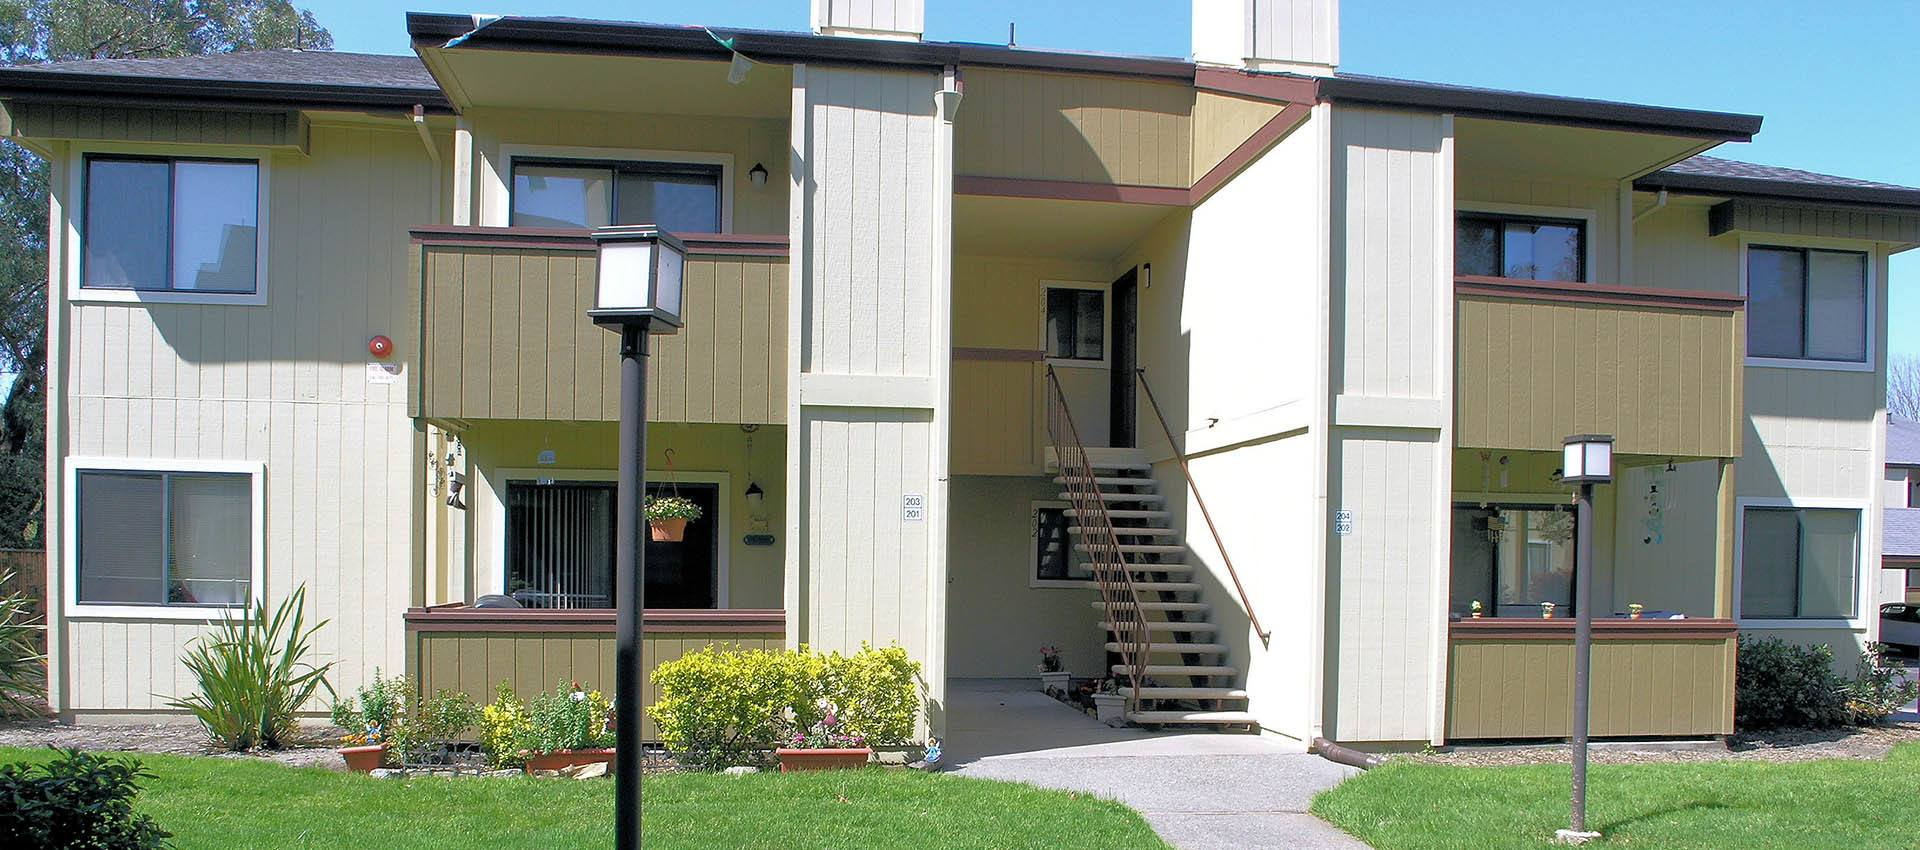 Exterior of Park Ridge Apartment Homes in Rohnert Park, CA